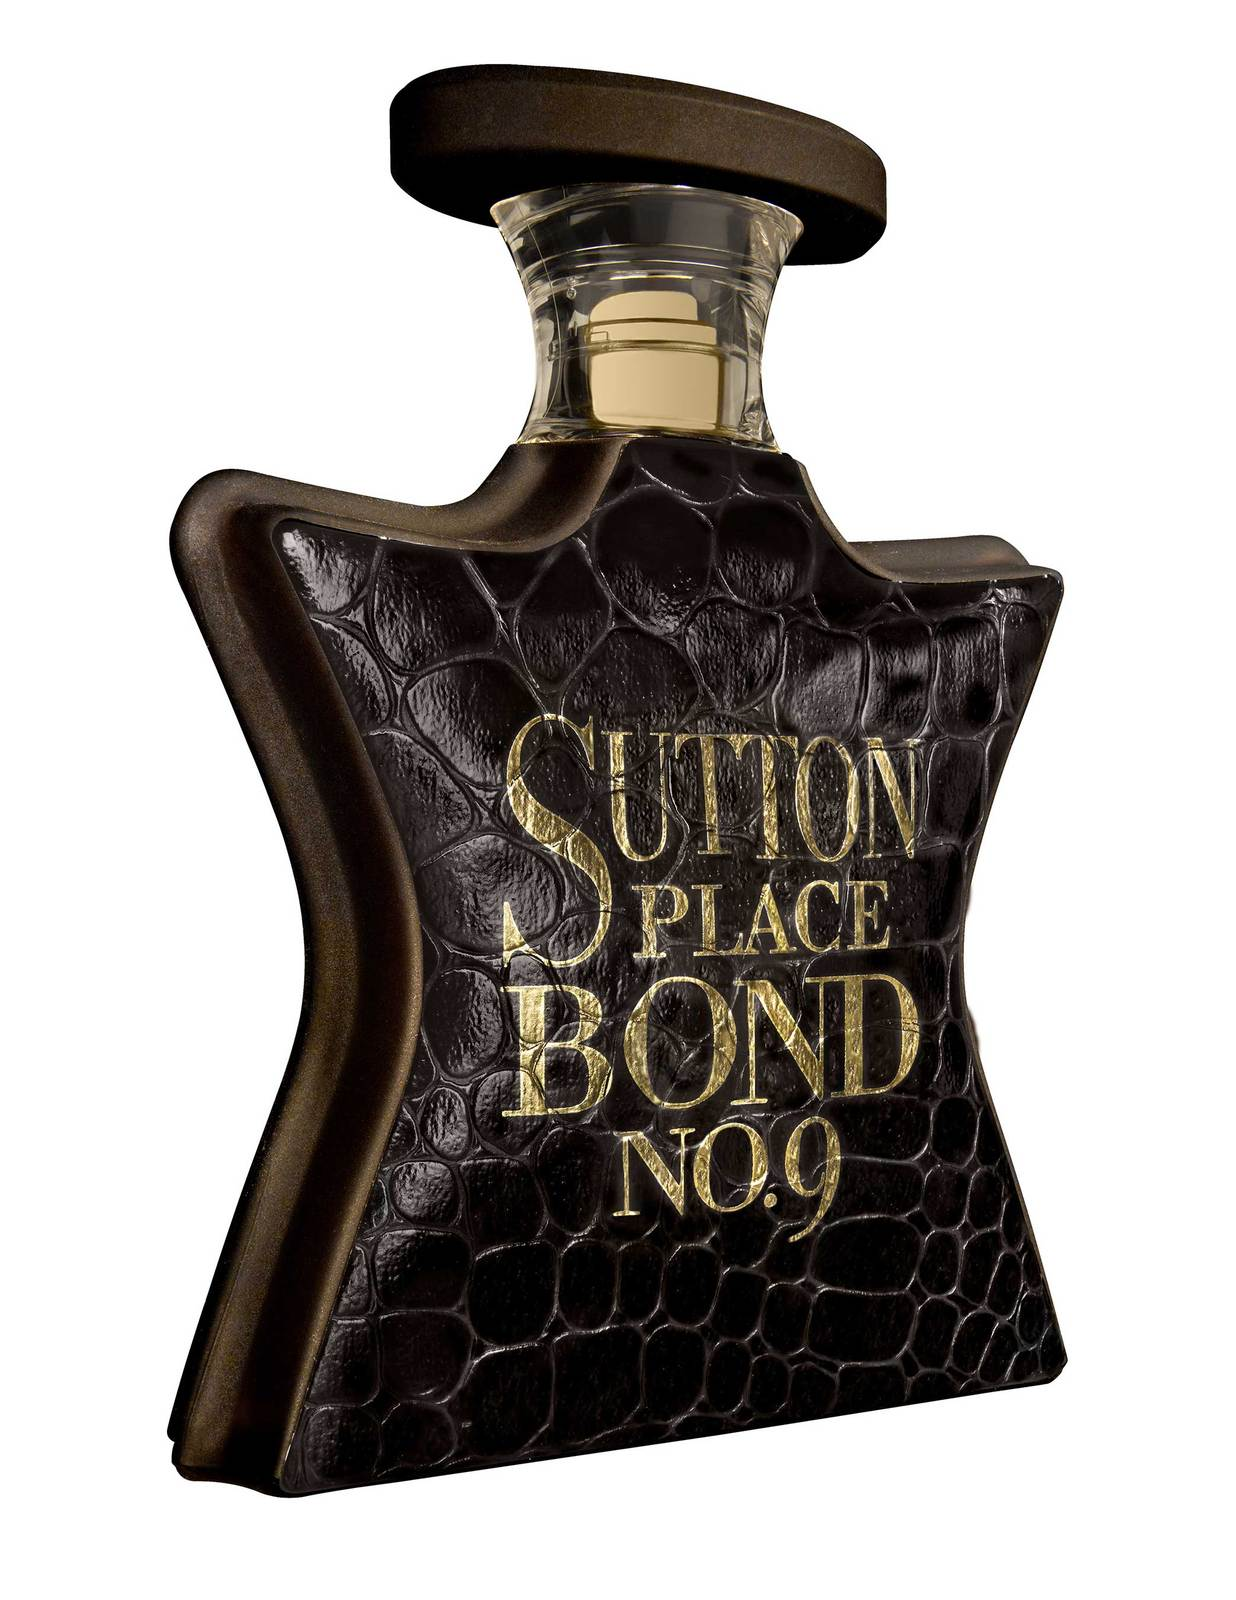 SUTTON PLACE by BOND No.9 5ml TRAVEL SPRAY EDP Tangerine Amber Leather Parfum